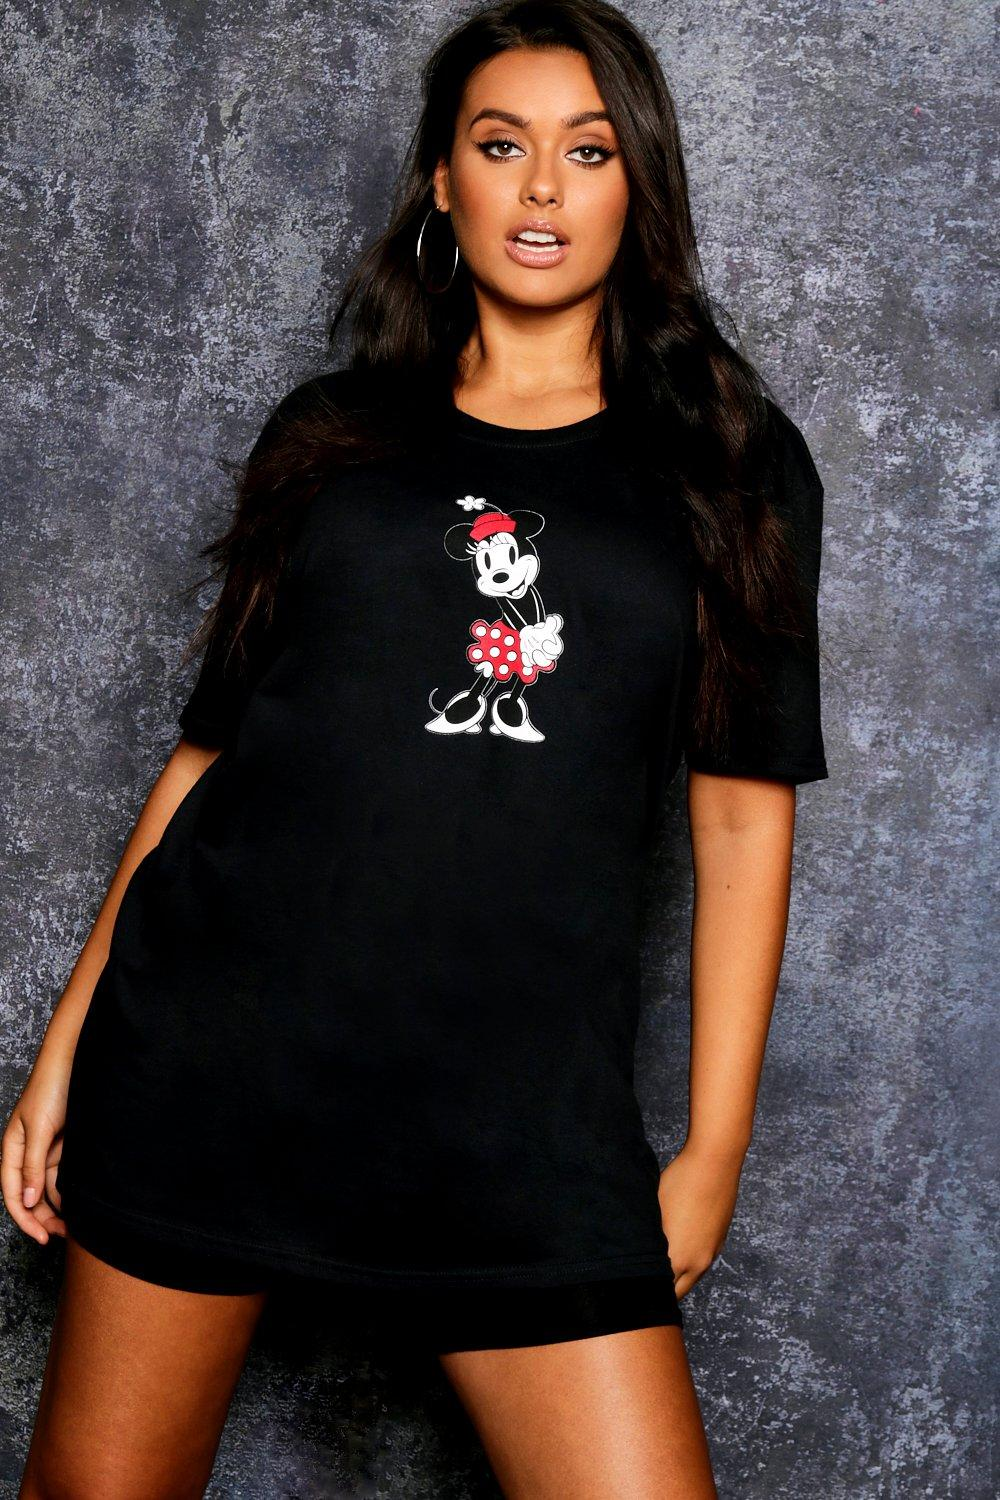 black Oversized Minnie T Graphic Disney Shirt 7Spqzfgwx